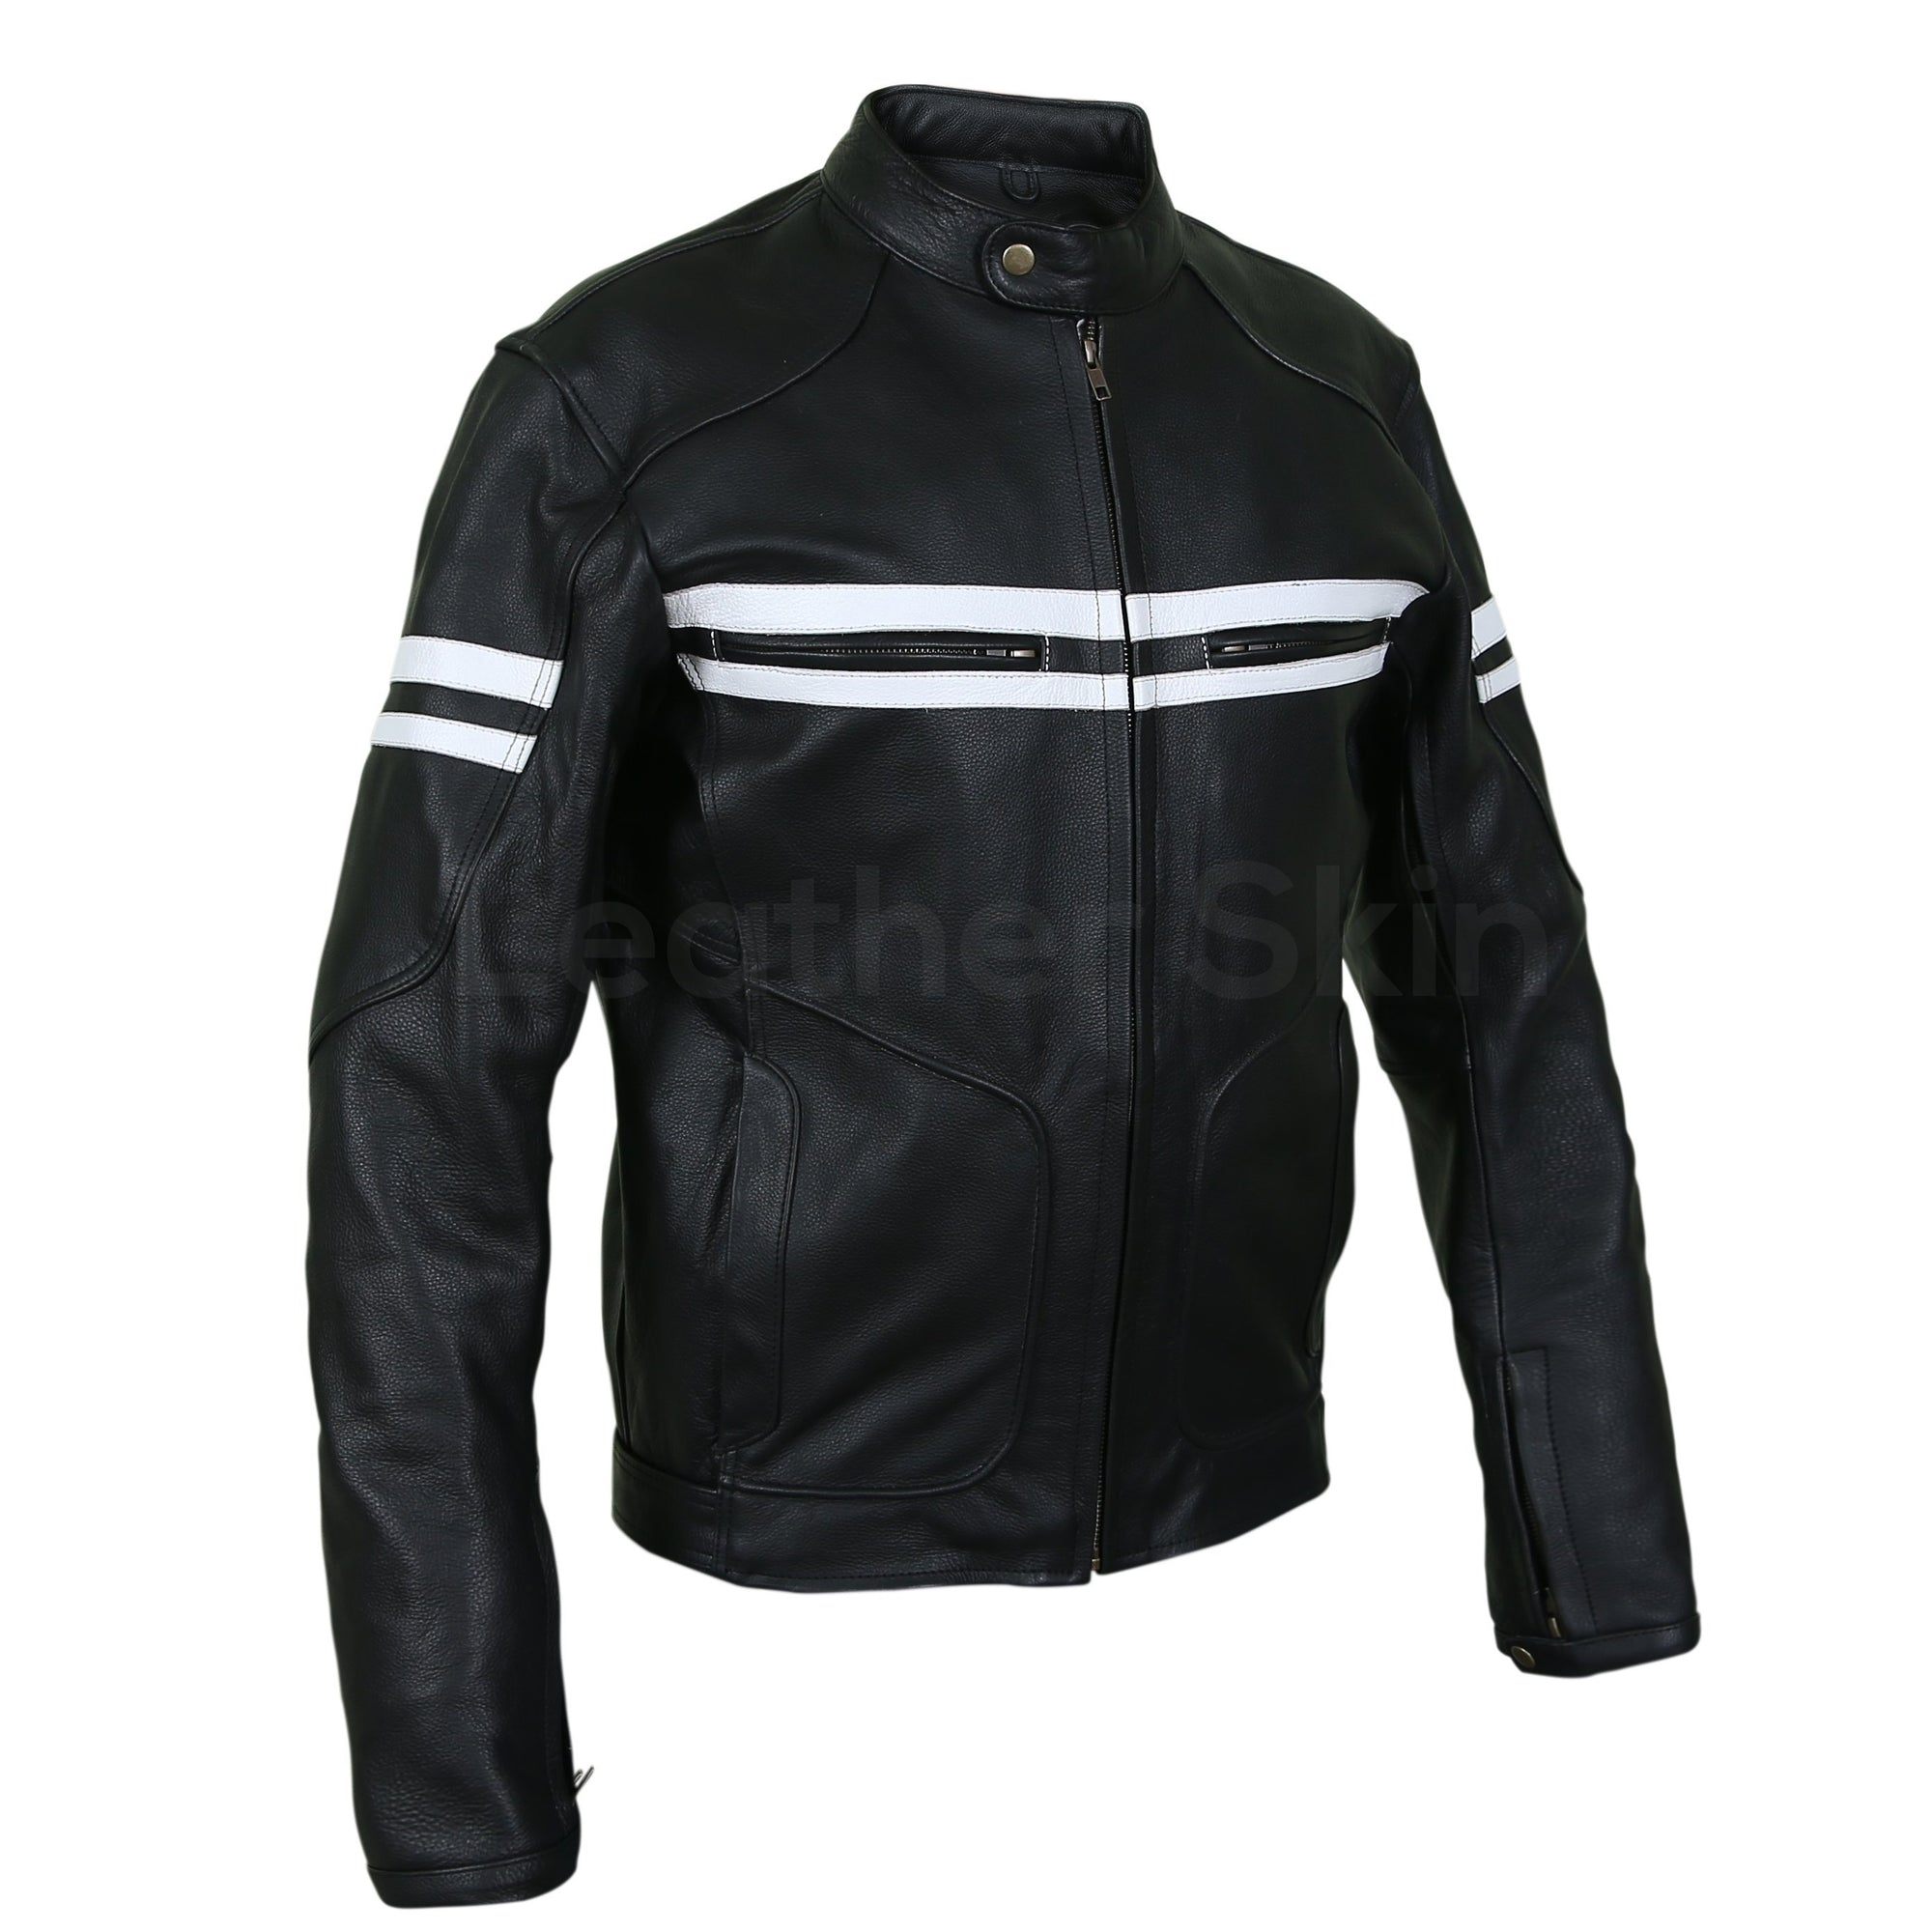 black biker jacket with white stripes